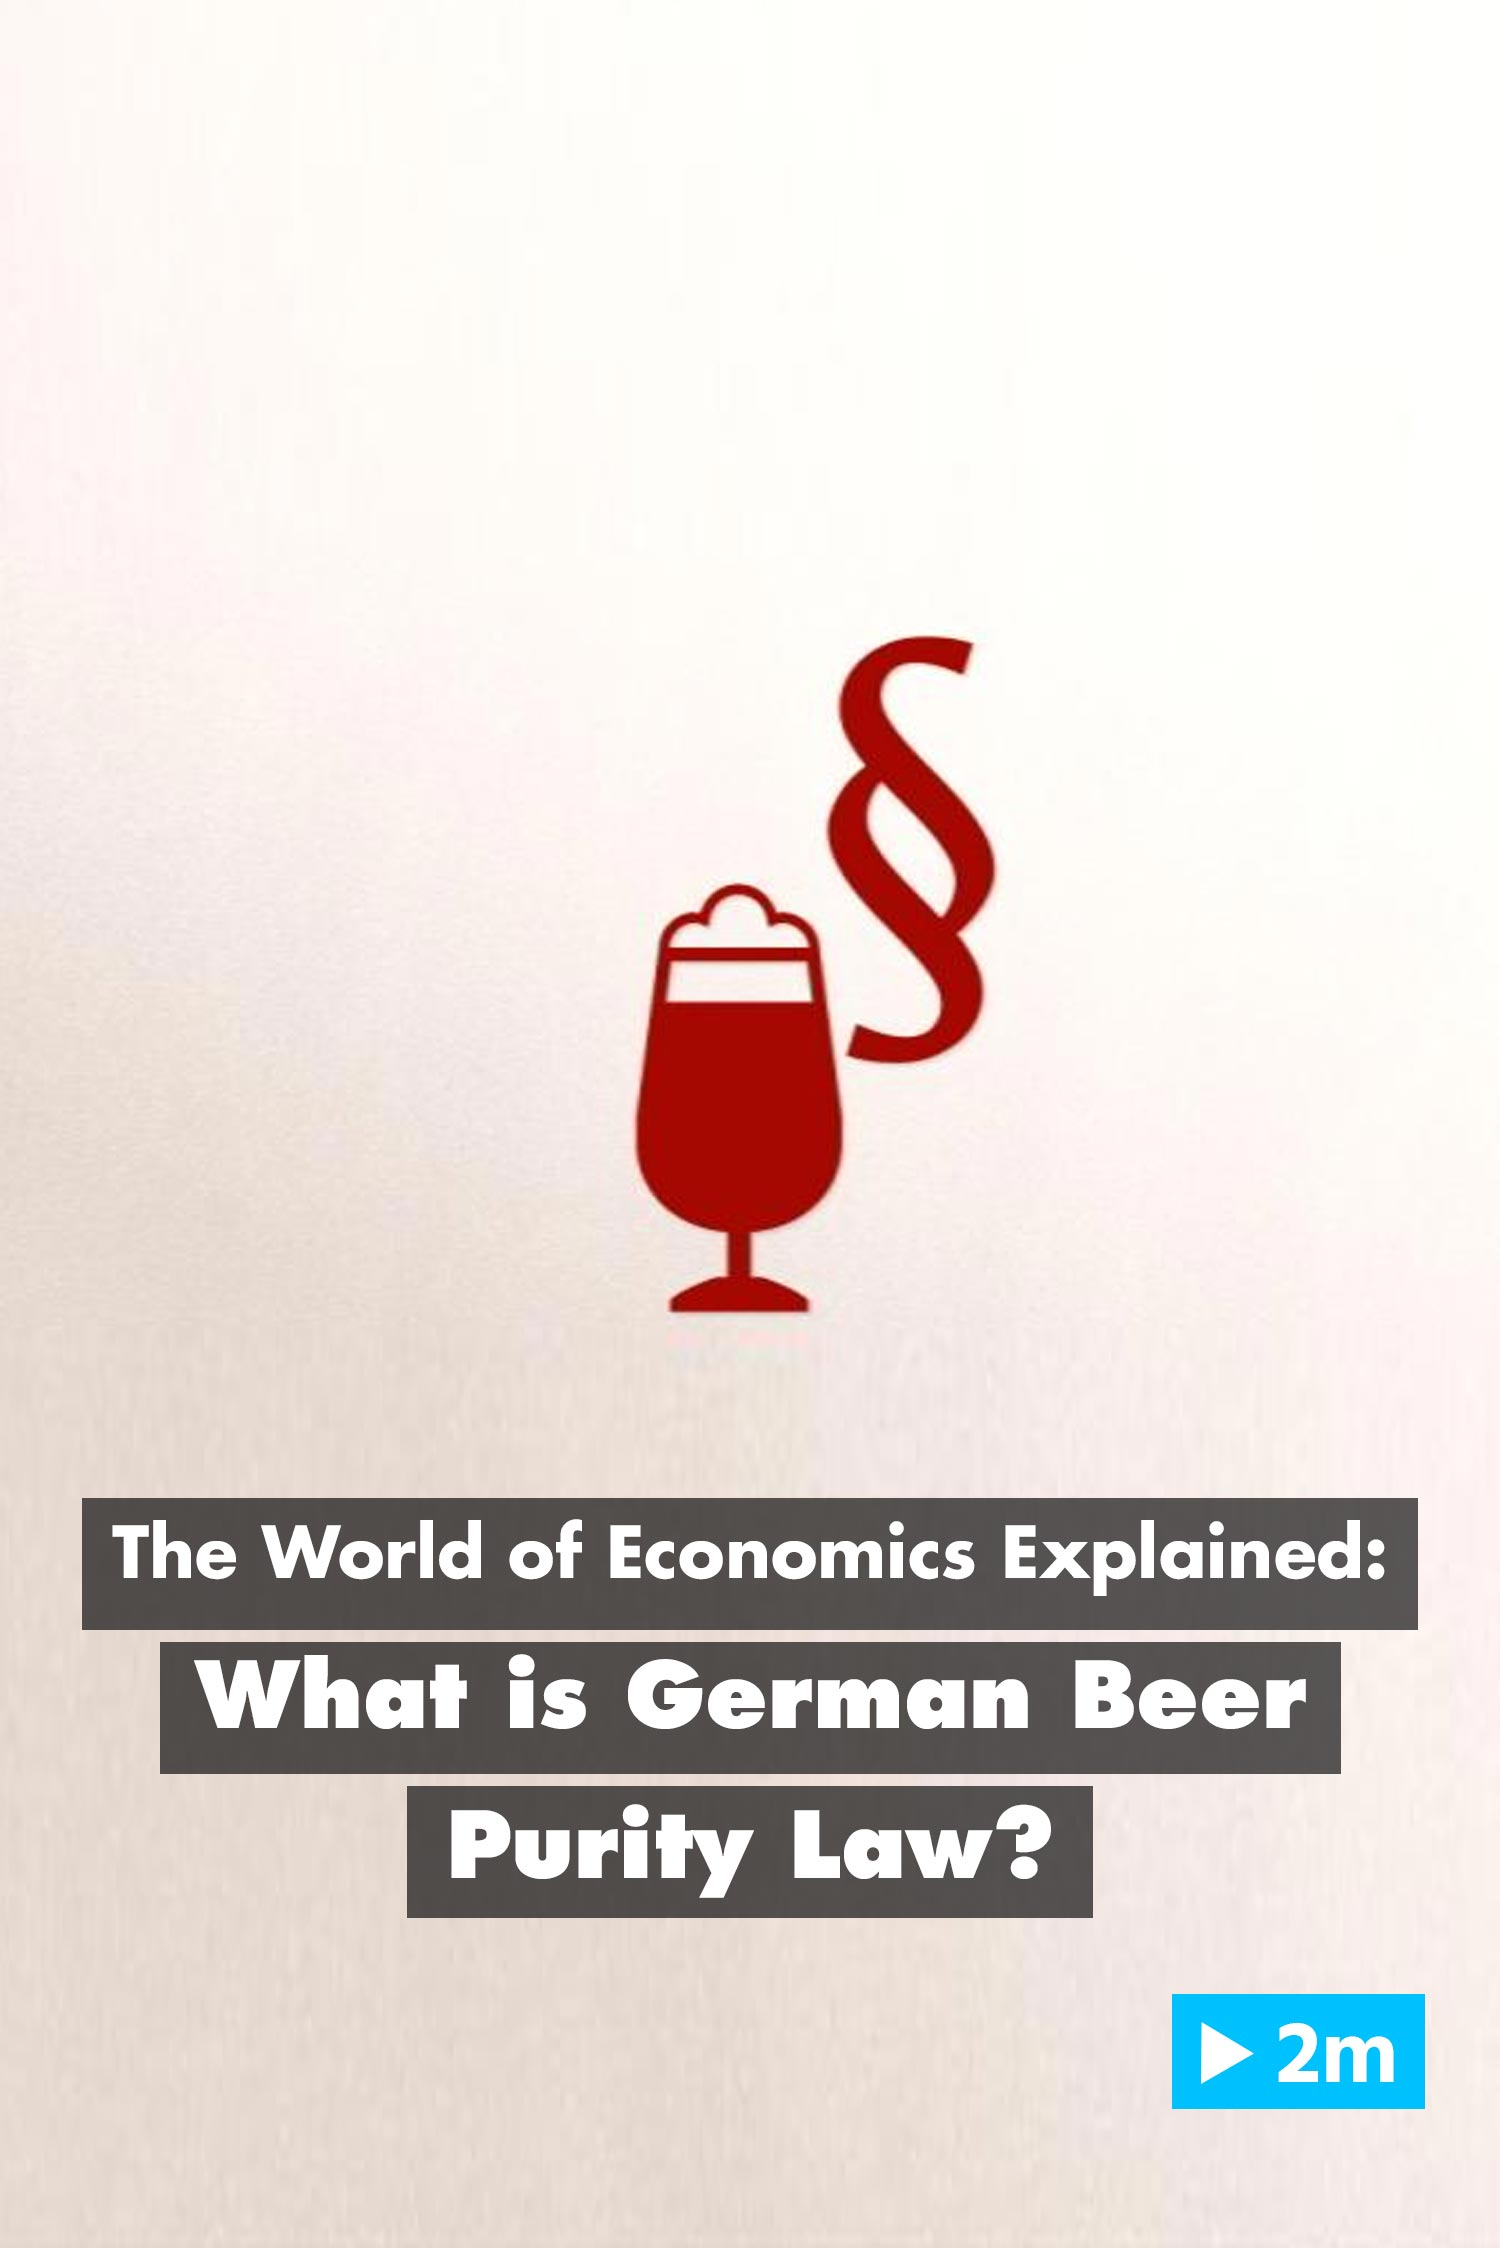 The World of Economics Explained: What is German beer purity law?